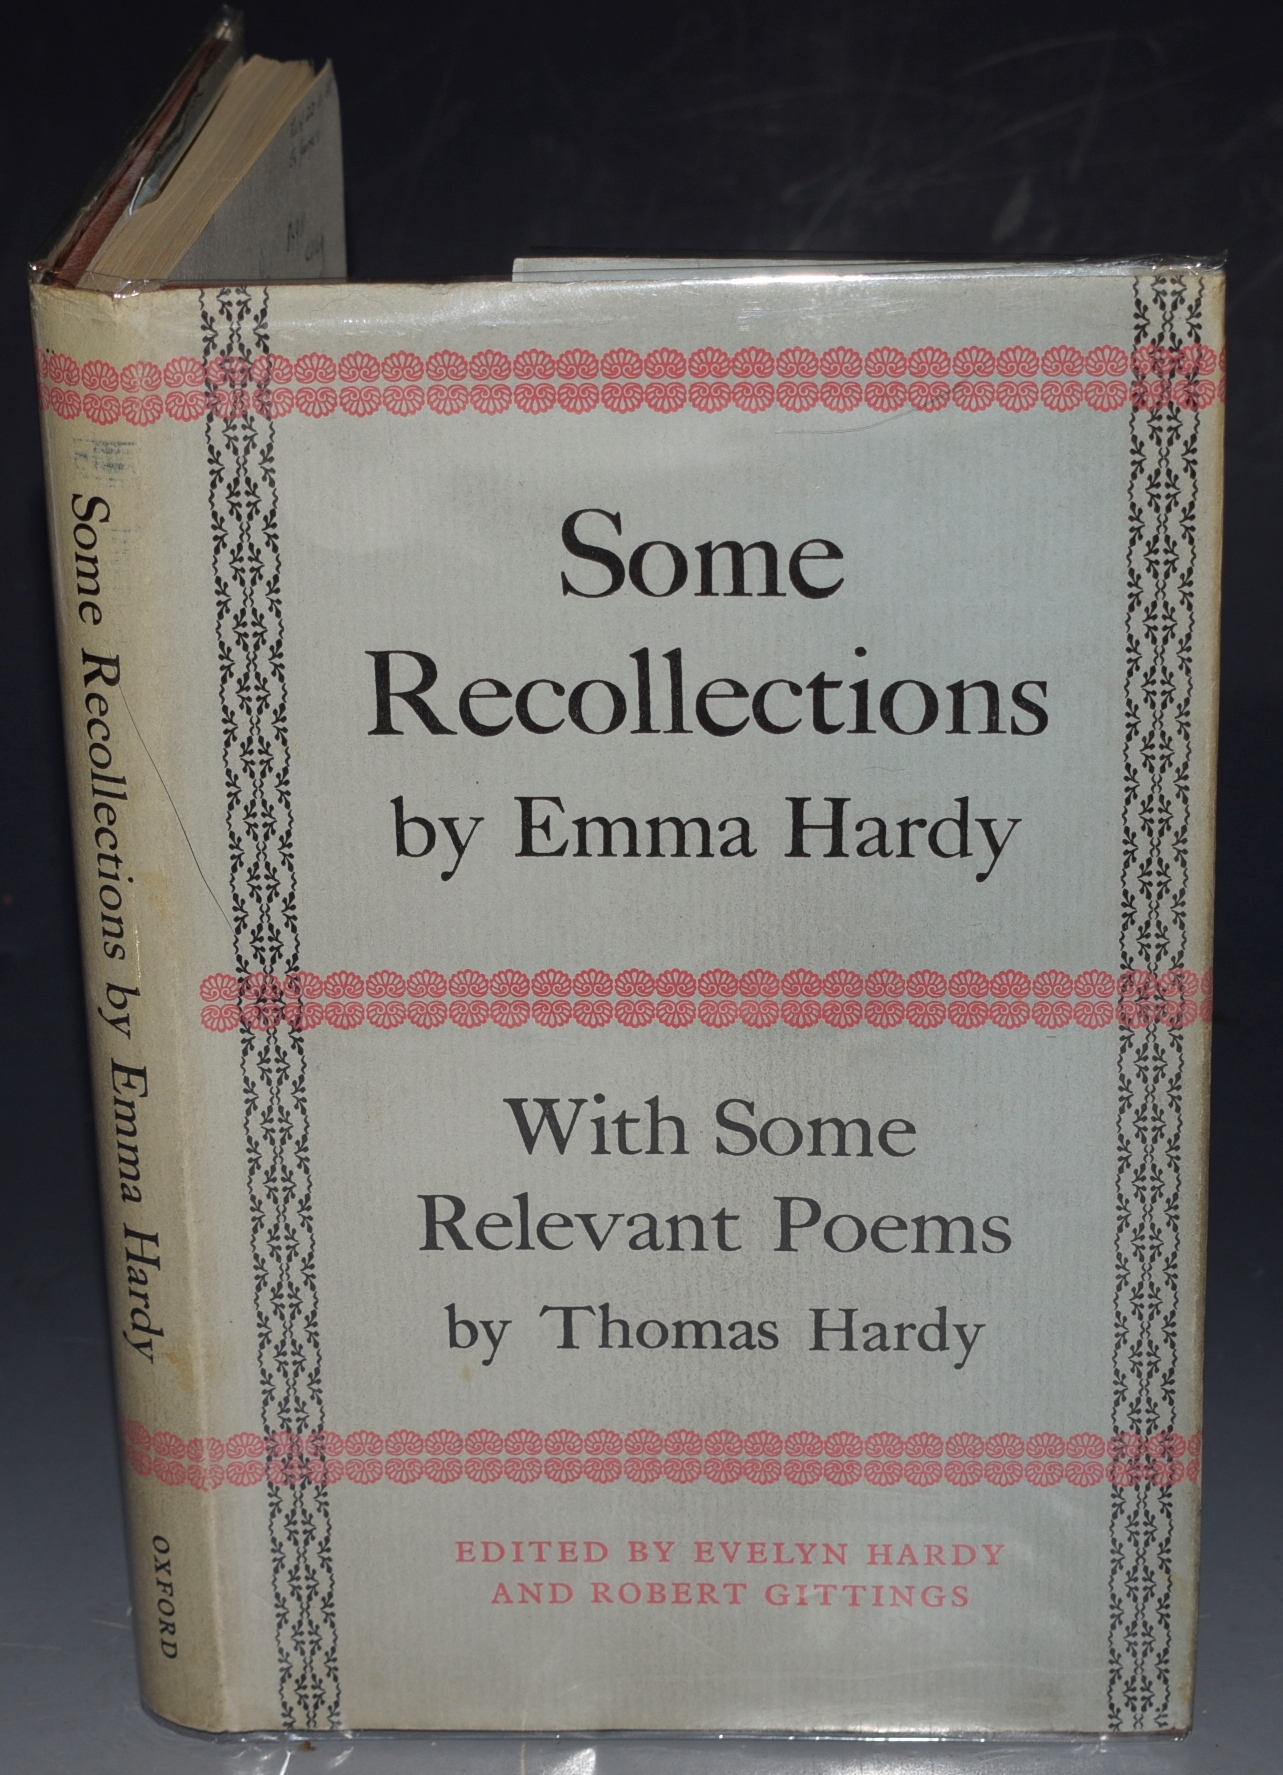 Image for Some Recollections. By Thomas Hardy's first wife. With notes by Evelyn Hardy. Together with Some Relevant Poems by Thomas Hardy. With Notes by R.Gittings.